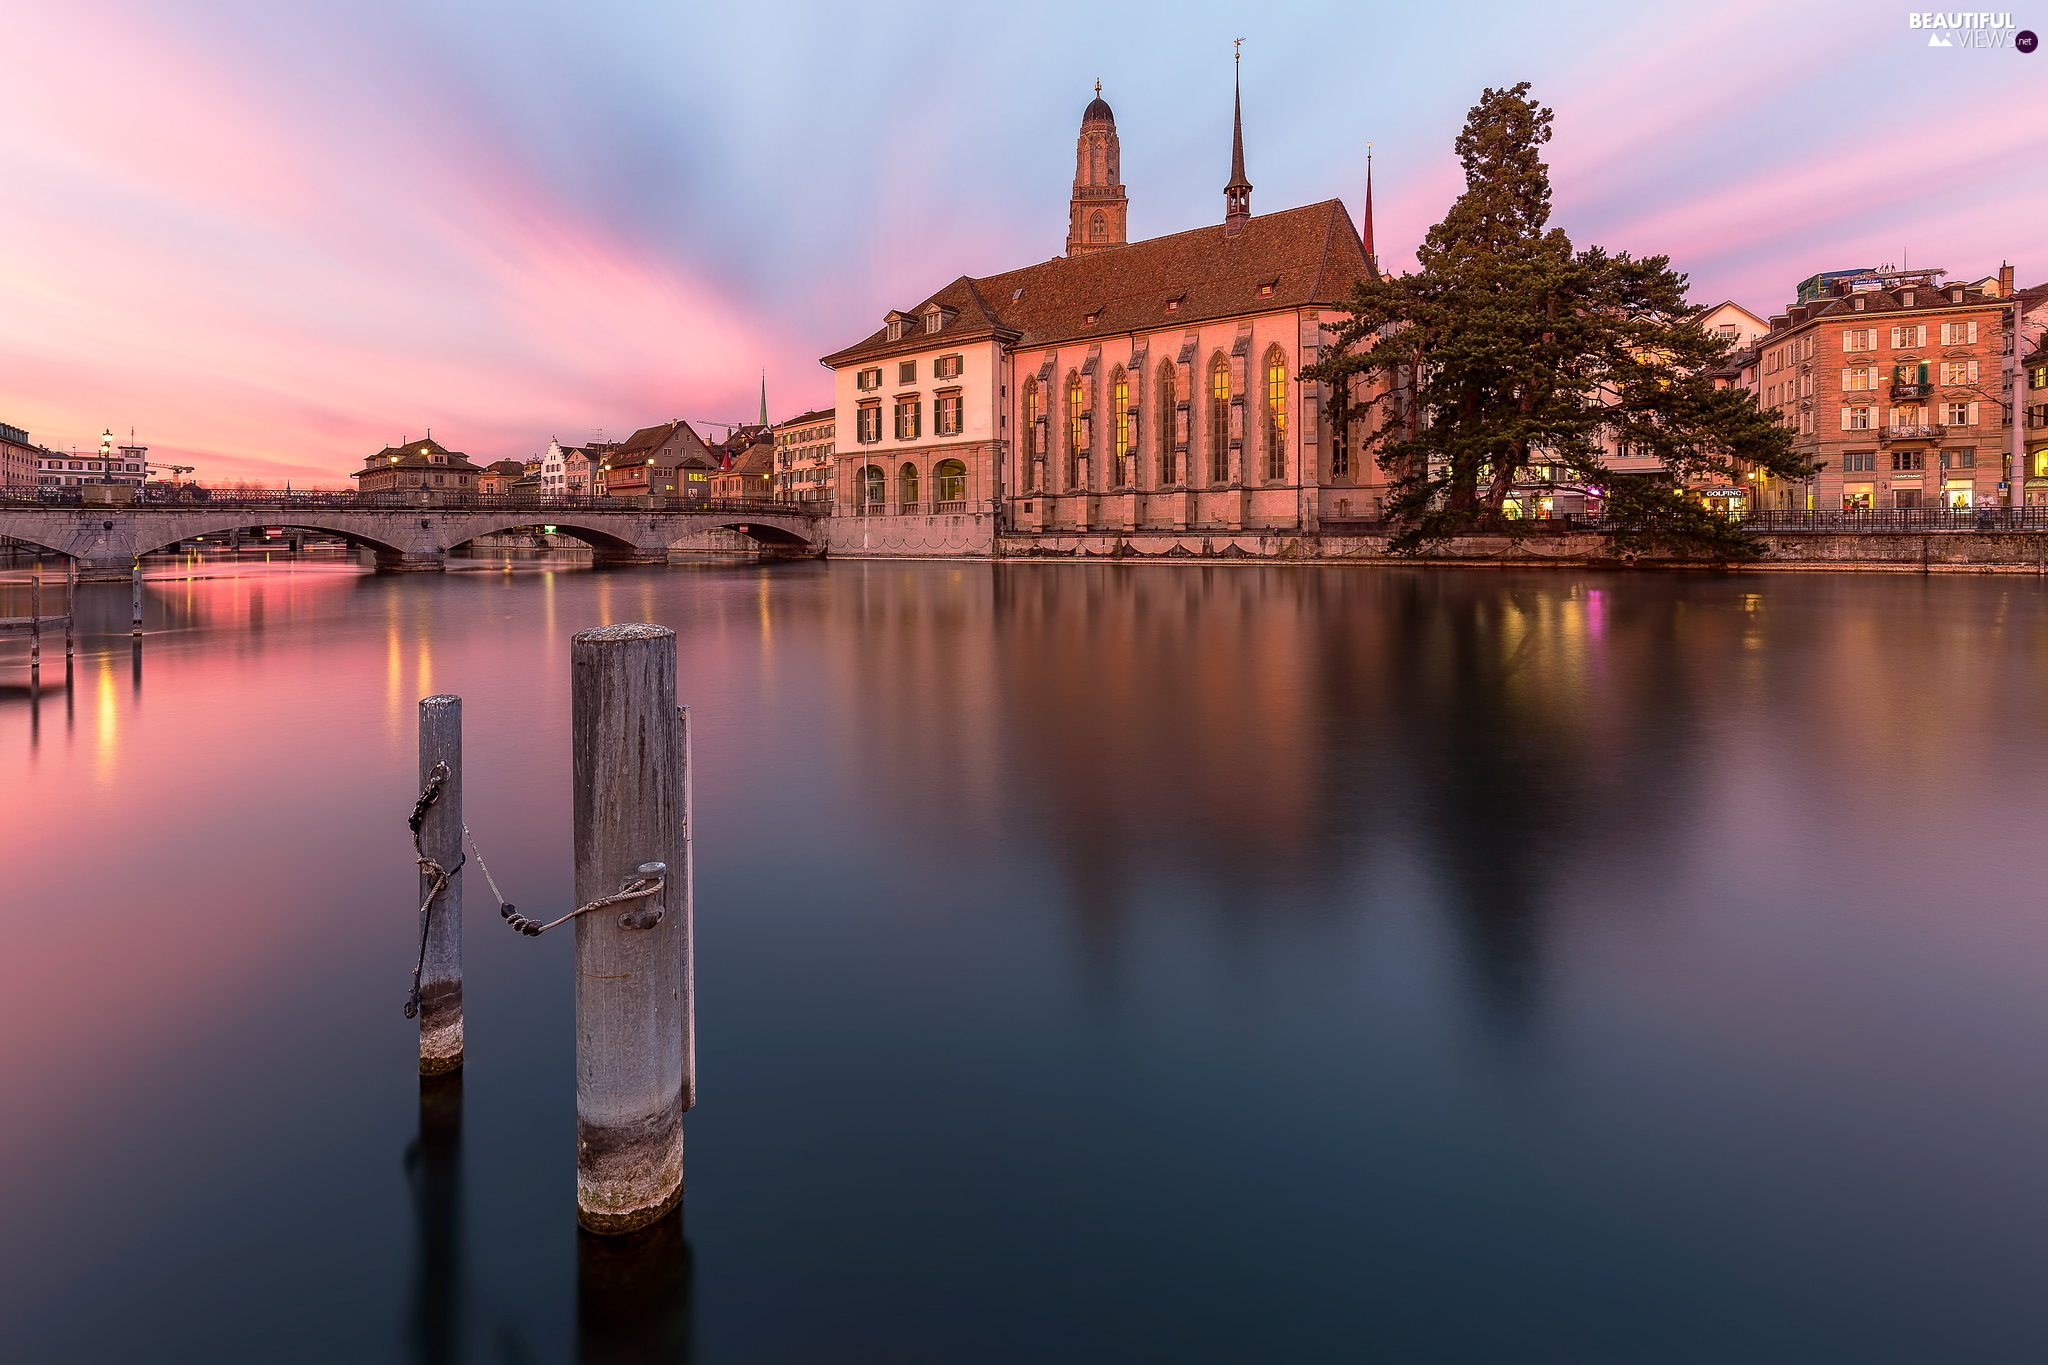 Zurich, Switzerland, Grossmunster Church, bridge, River Limmat